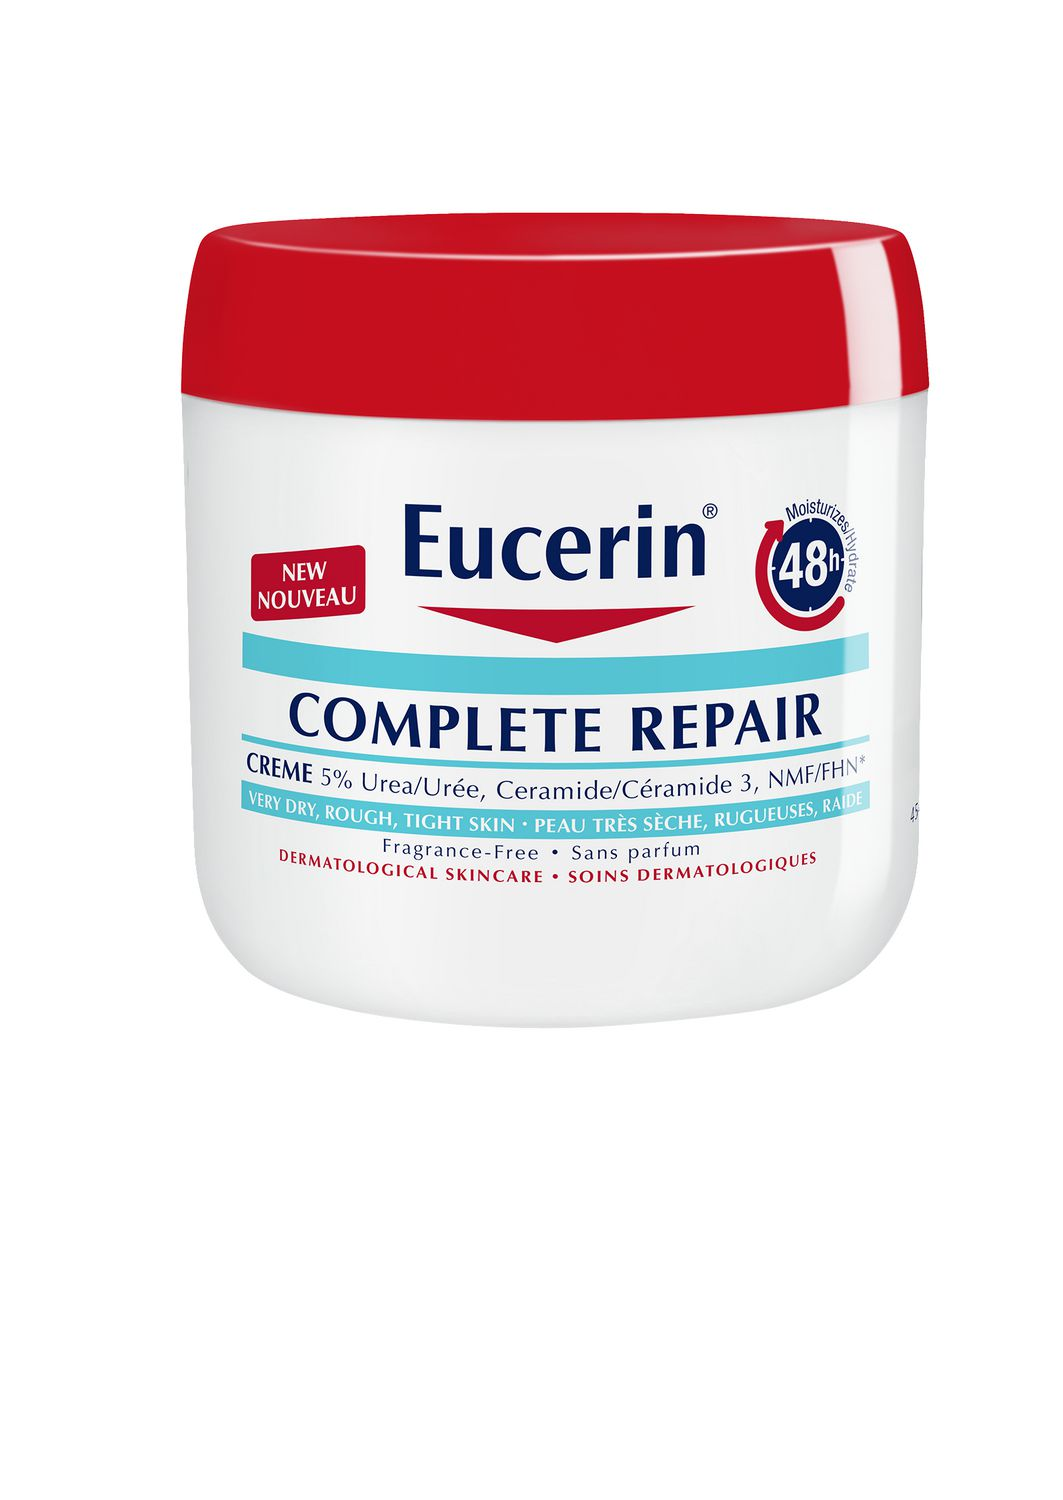 Eucerin Complete Repair Body Cream 454g